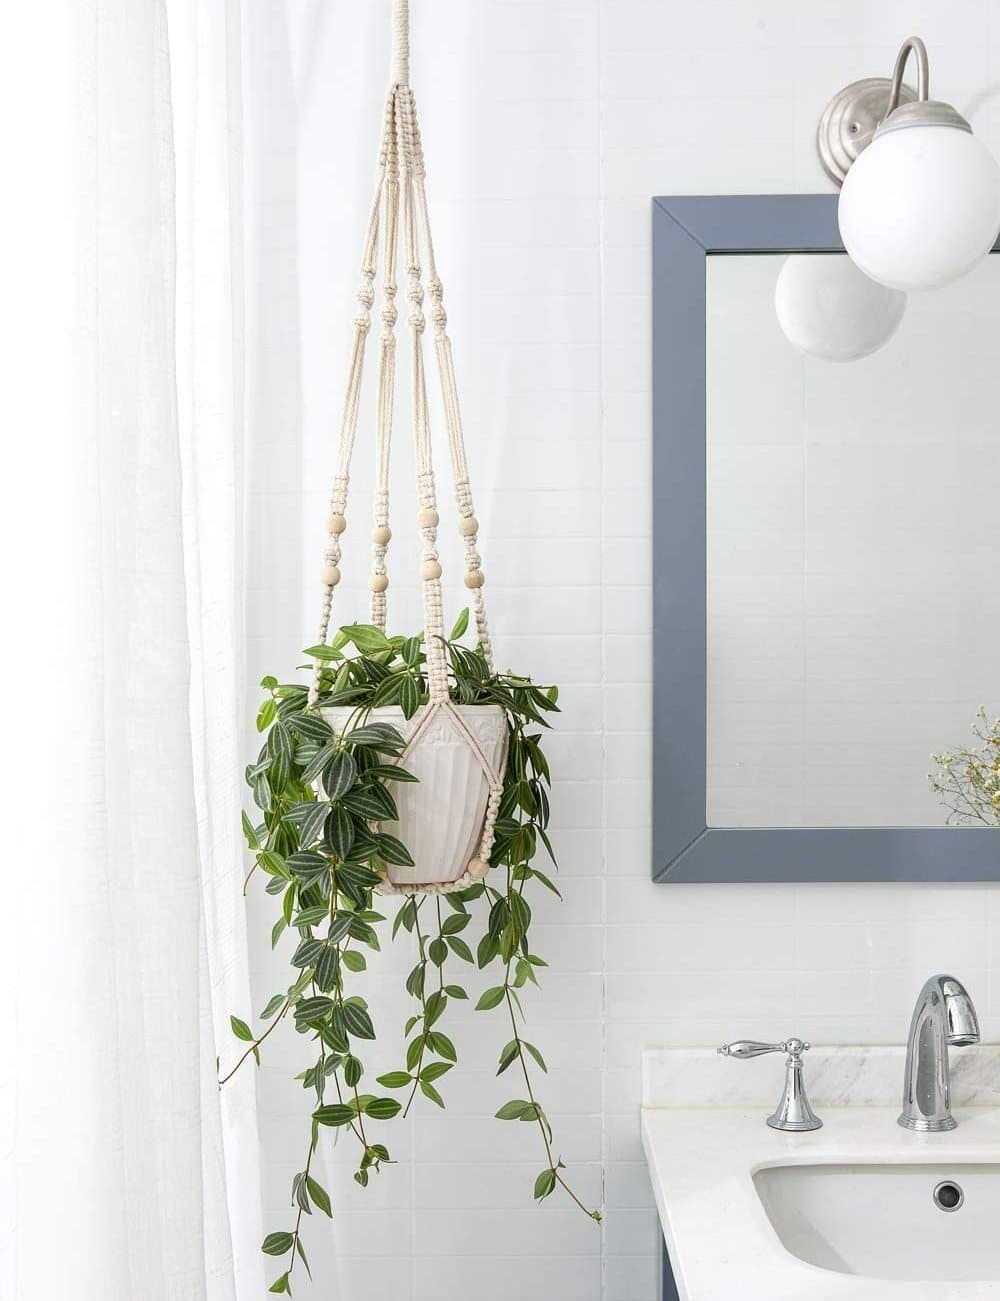 gifts-for-mother-in-laws-macrame-plant-hanger